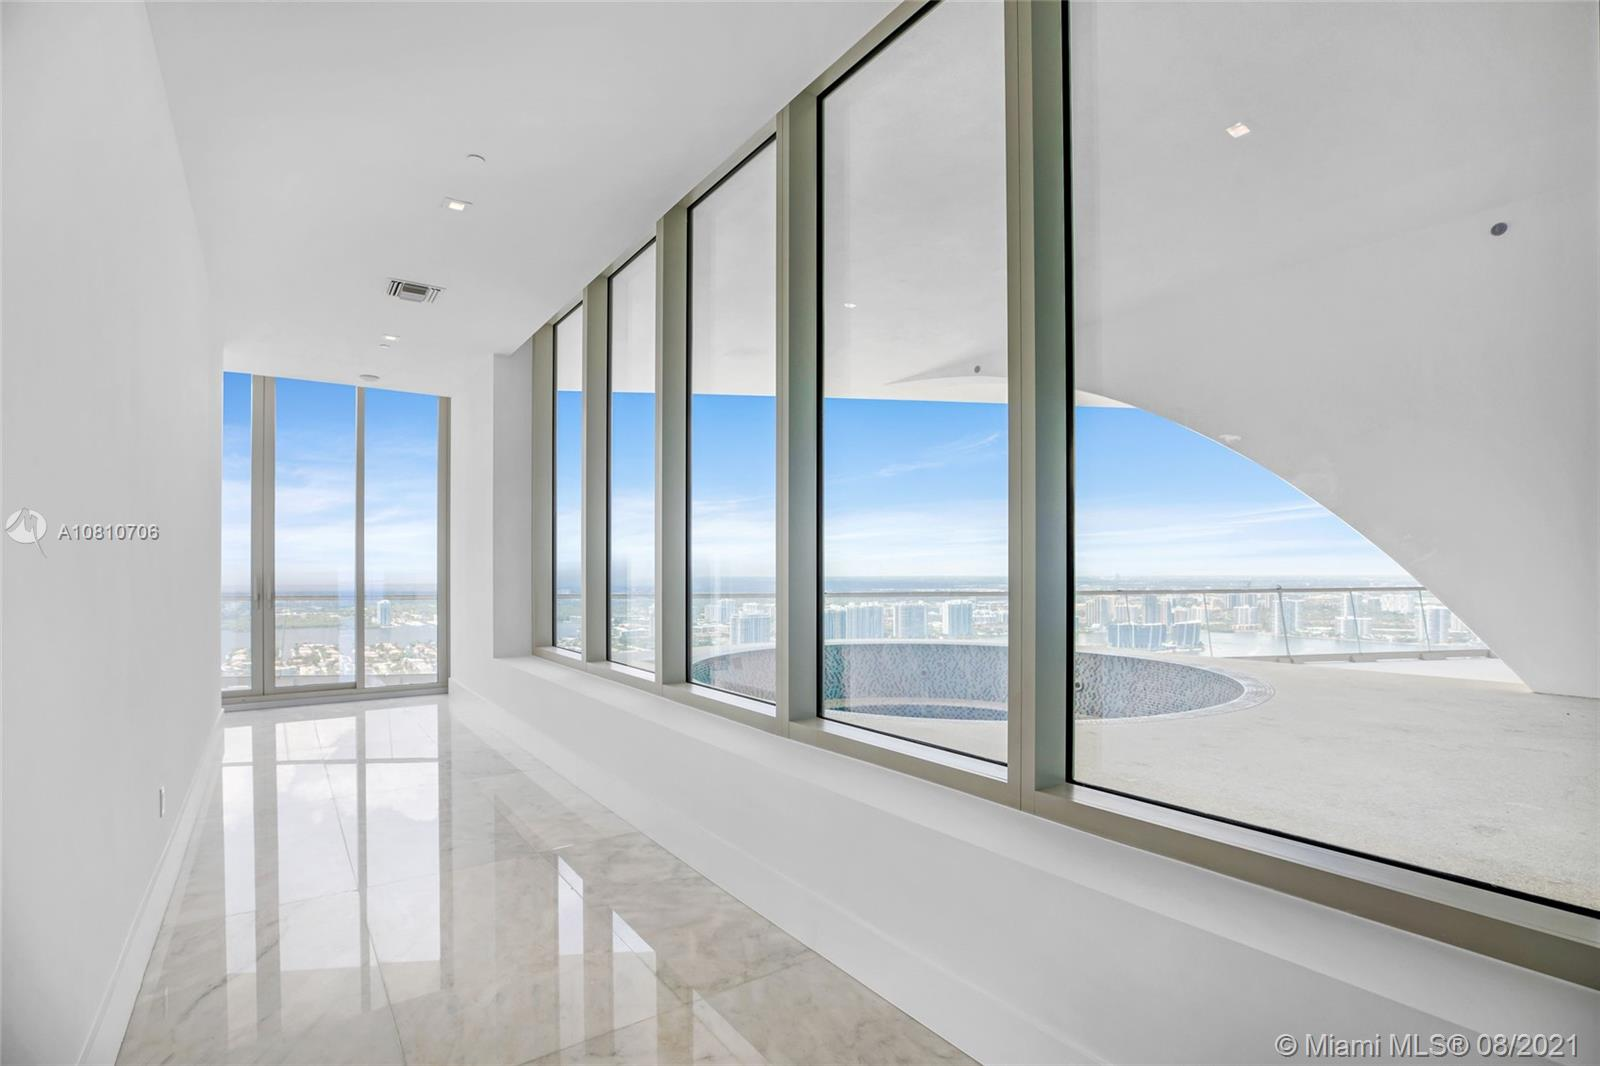 Sunny Isles Beach Homes For Sale